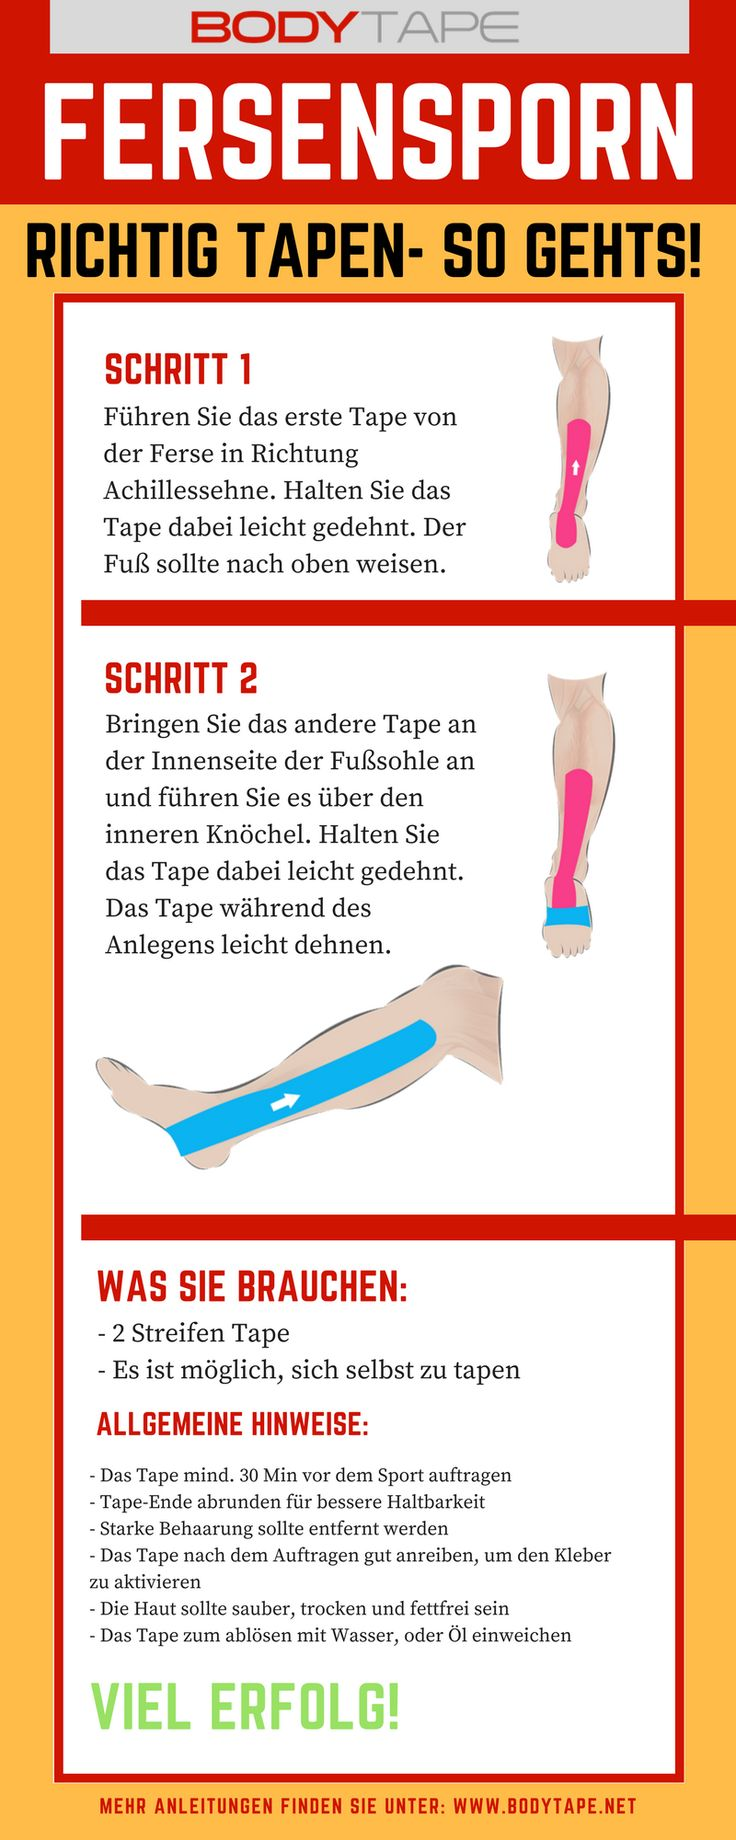 Fersensporn Tapen Anleitung / Kinesiologie Tape Anleitung für Fersensporn selber Tapen  Mehr unter: www.taping-guide.com